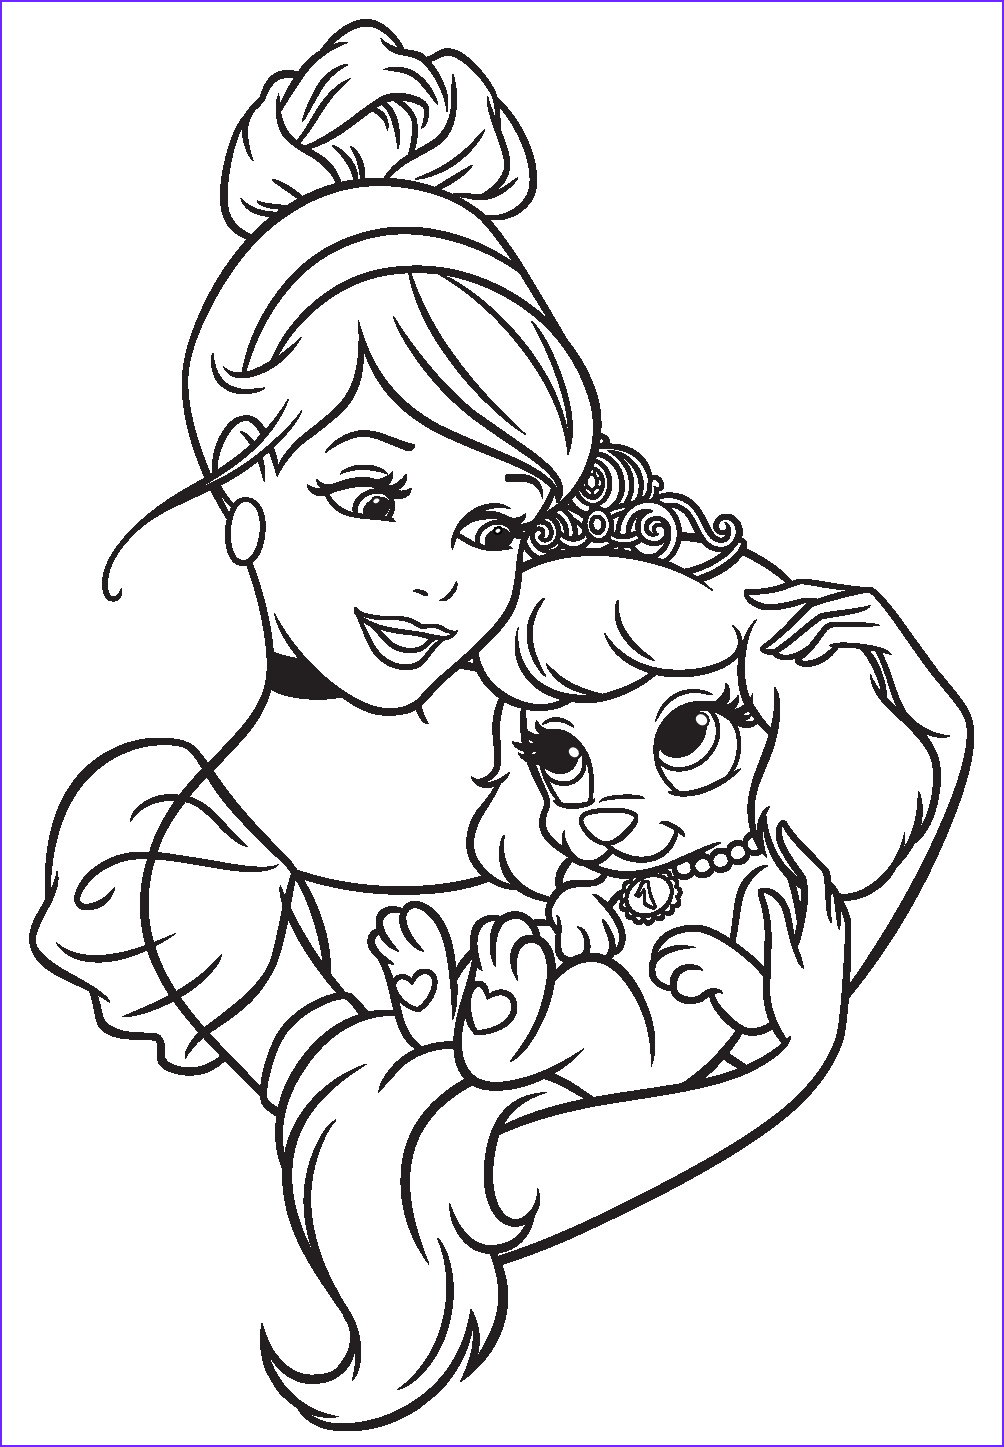 Palace Coloring Page Beautiful Images Palace Pets Coloring Pages Google Søgning